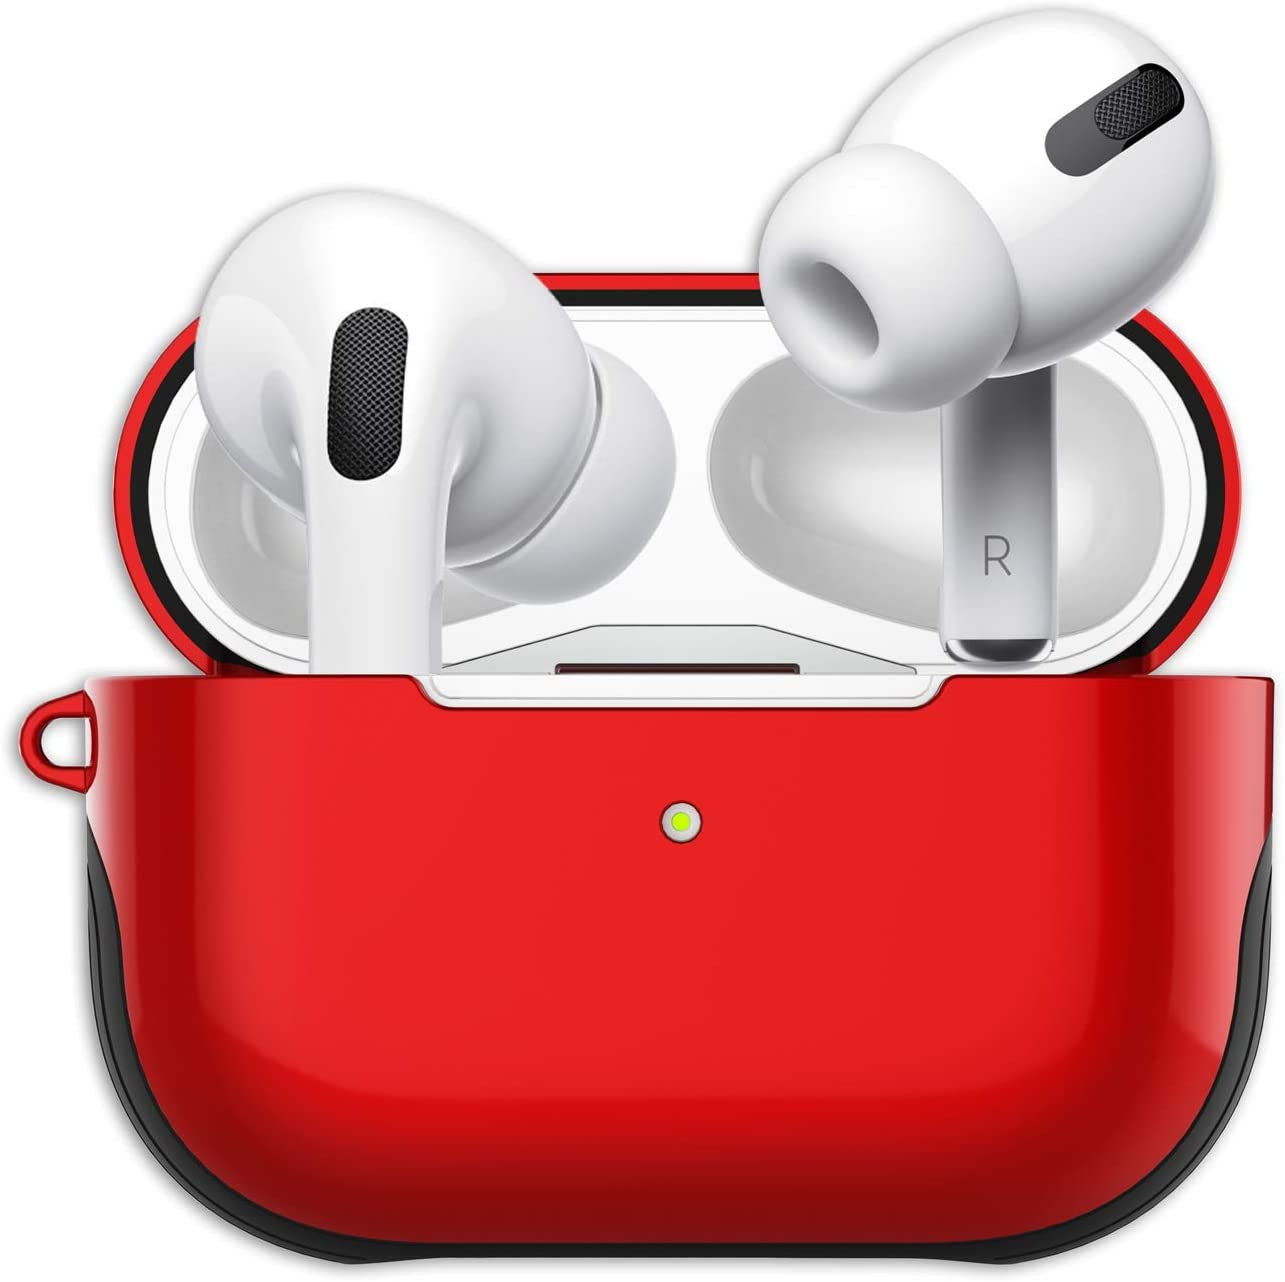 Amazon Com Airpods Pro Case Cover With Lanyard Luxurious Airpod Pro Cover Hard Shell Plastic Silicone 2 In 1 Airpods Pro Skin Airpos Protective Case For Airpod Pro Charging Case Red Home Audio